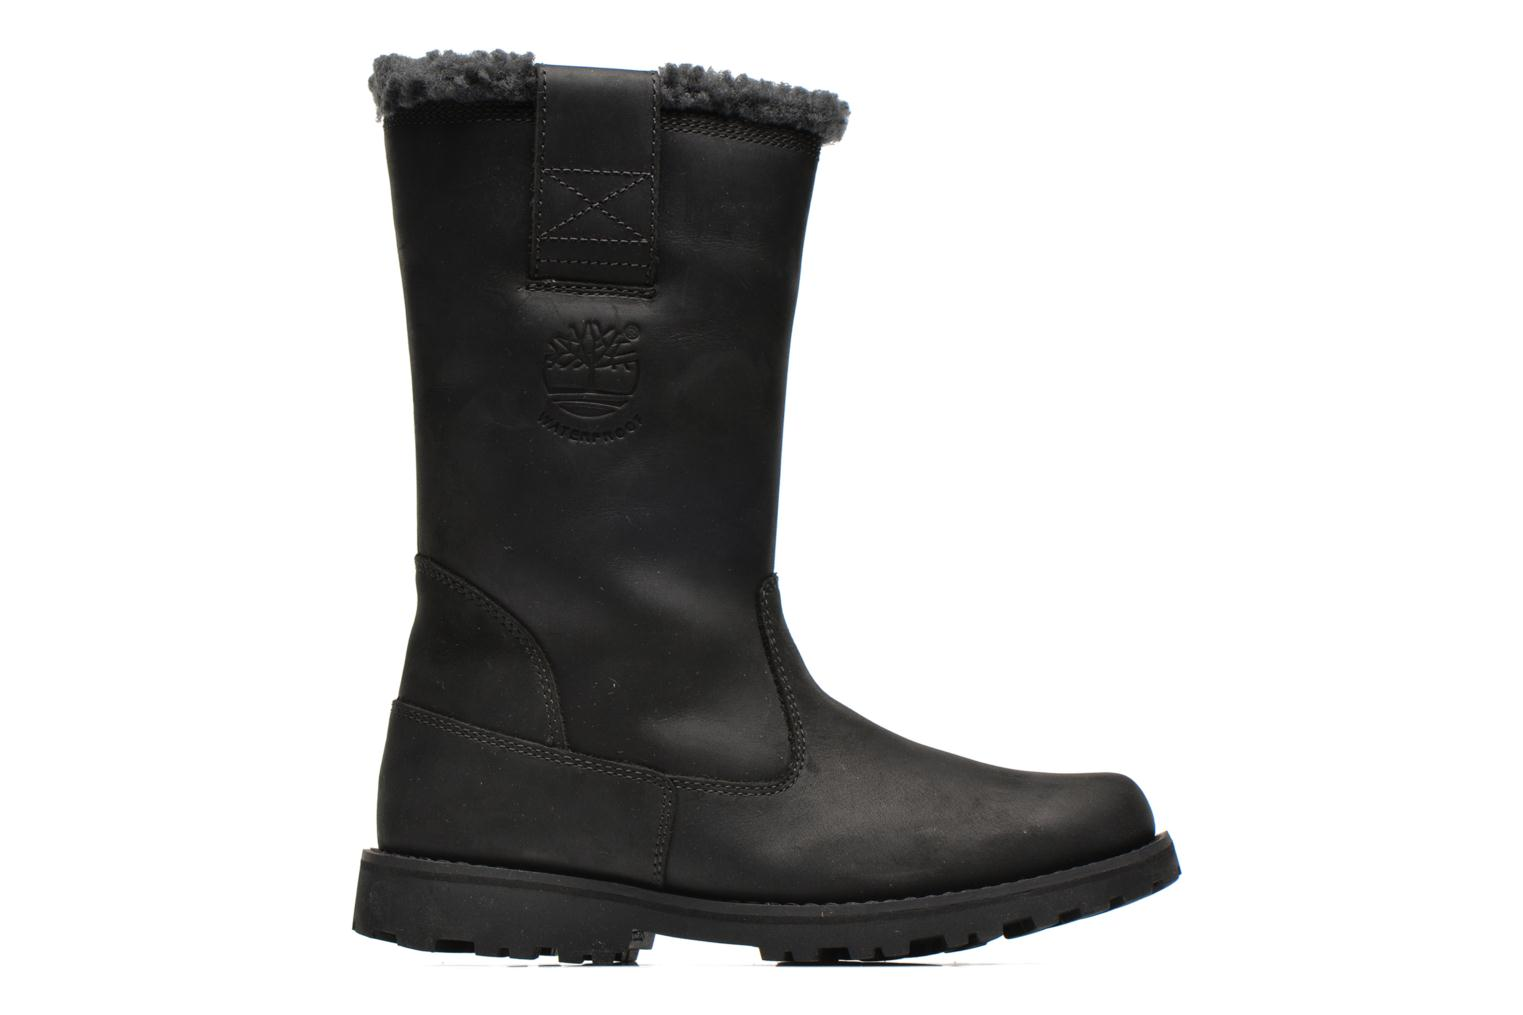 Bottines et boots Timberland 8 IN PULL ON WP BOOT Noir vue derrière